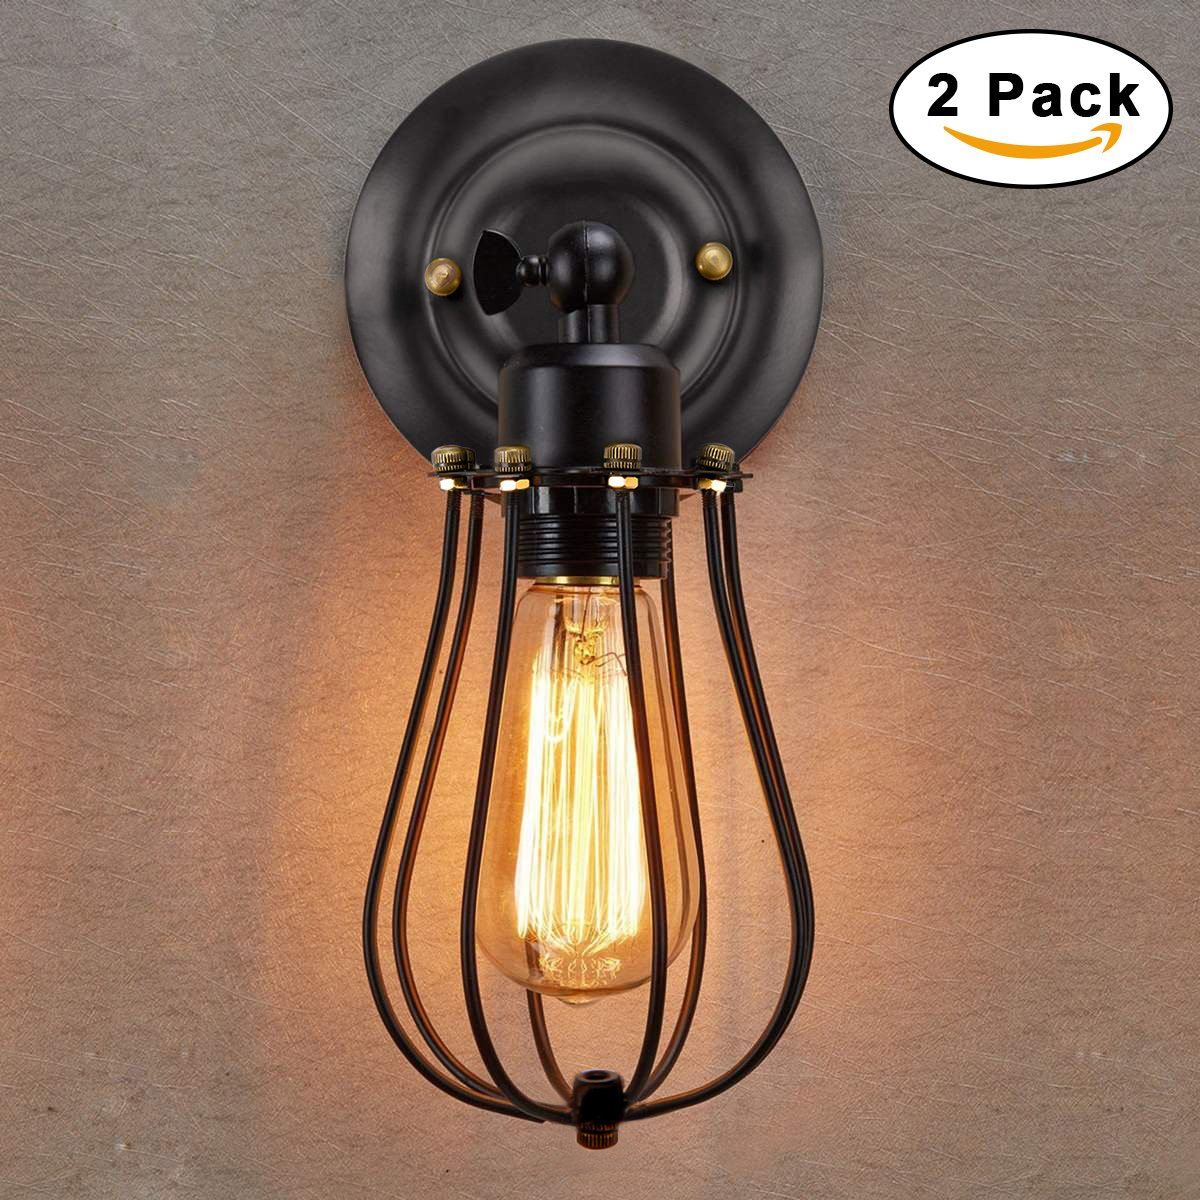 Wire Cage Wall Sconce Kingso 2 Pack Dimmable Metal Industrial Oil No Wiring Sconces Rubbed Bronze Light Shade Vintage Style Edison Mini Antique Fixture For Headboard